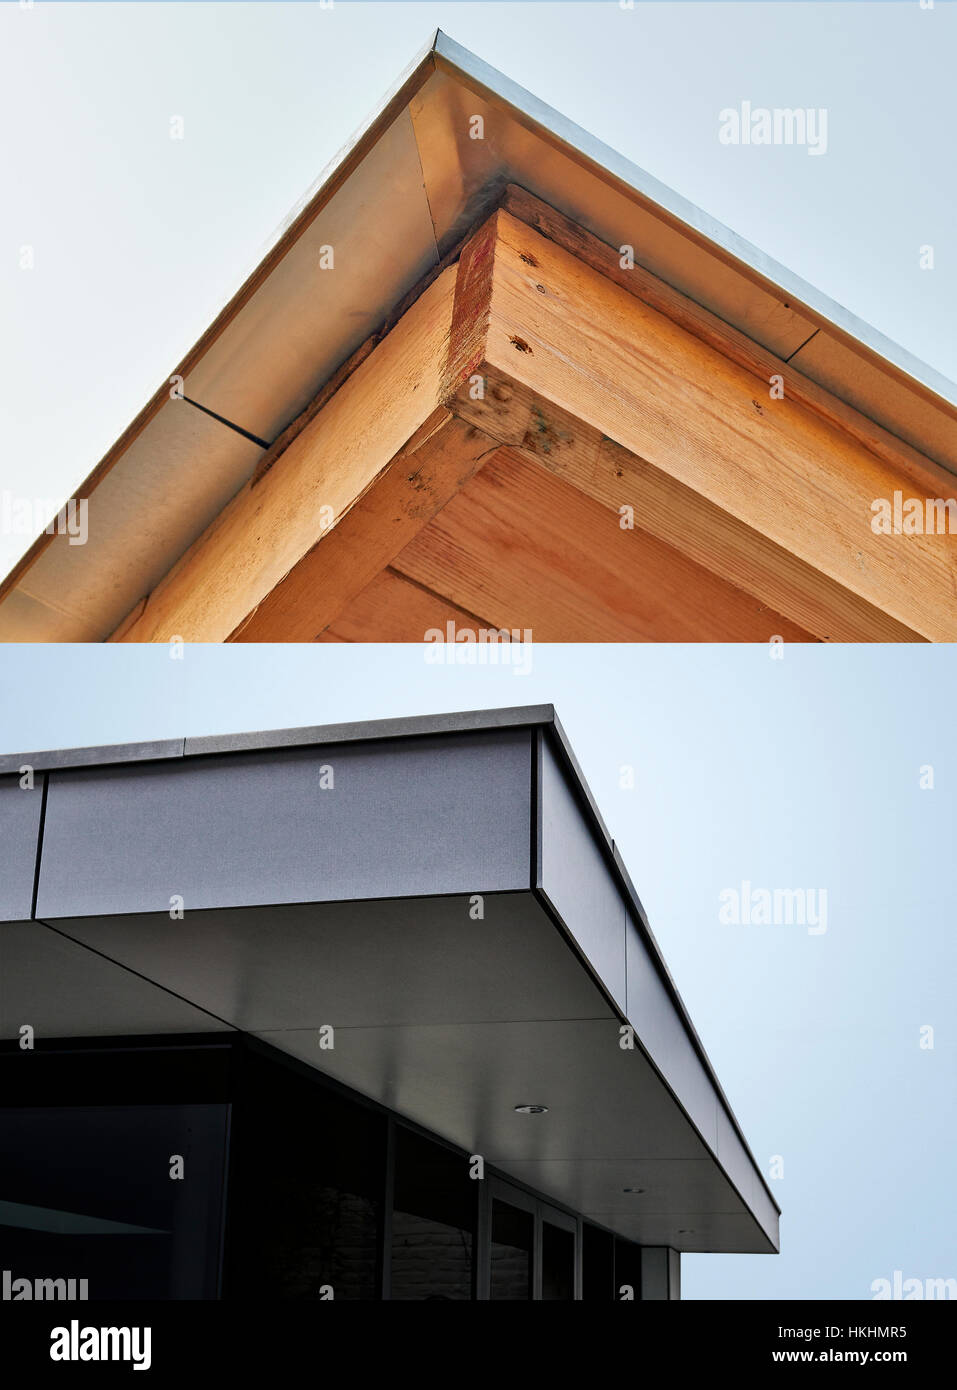 Roof Under Construction With Wood Frame And Zinc   Exterior Cladding Of The  Residential Building